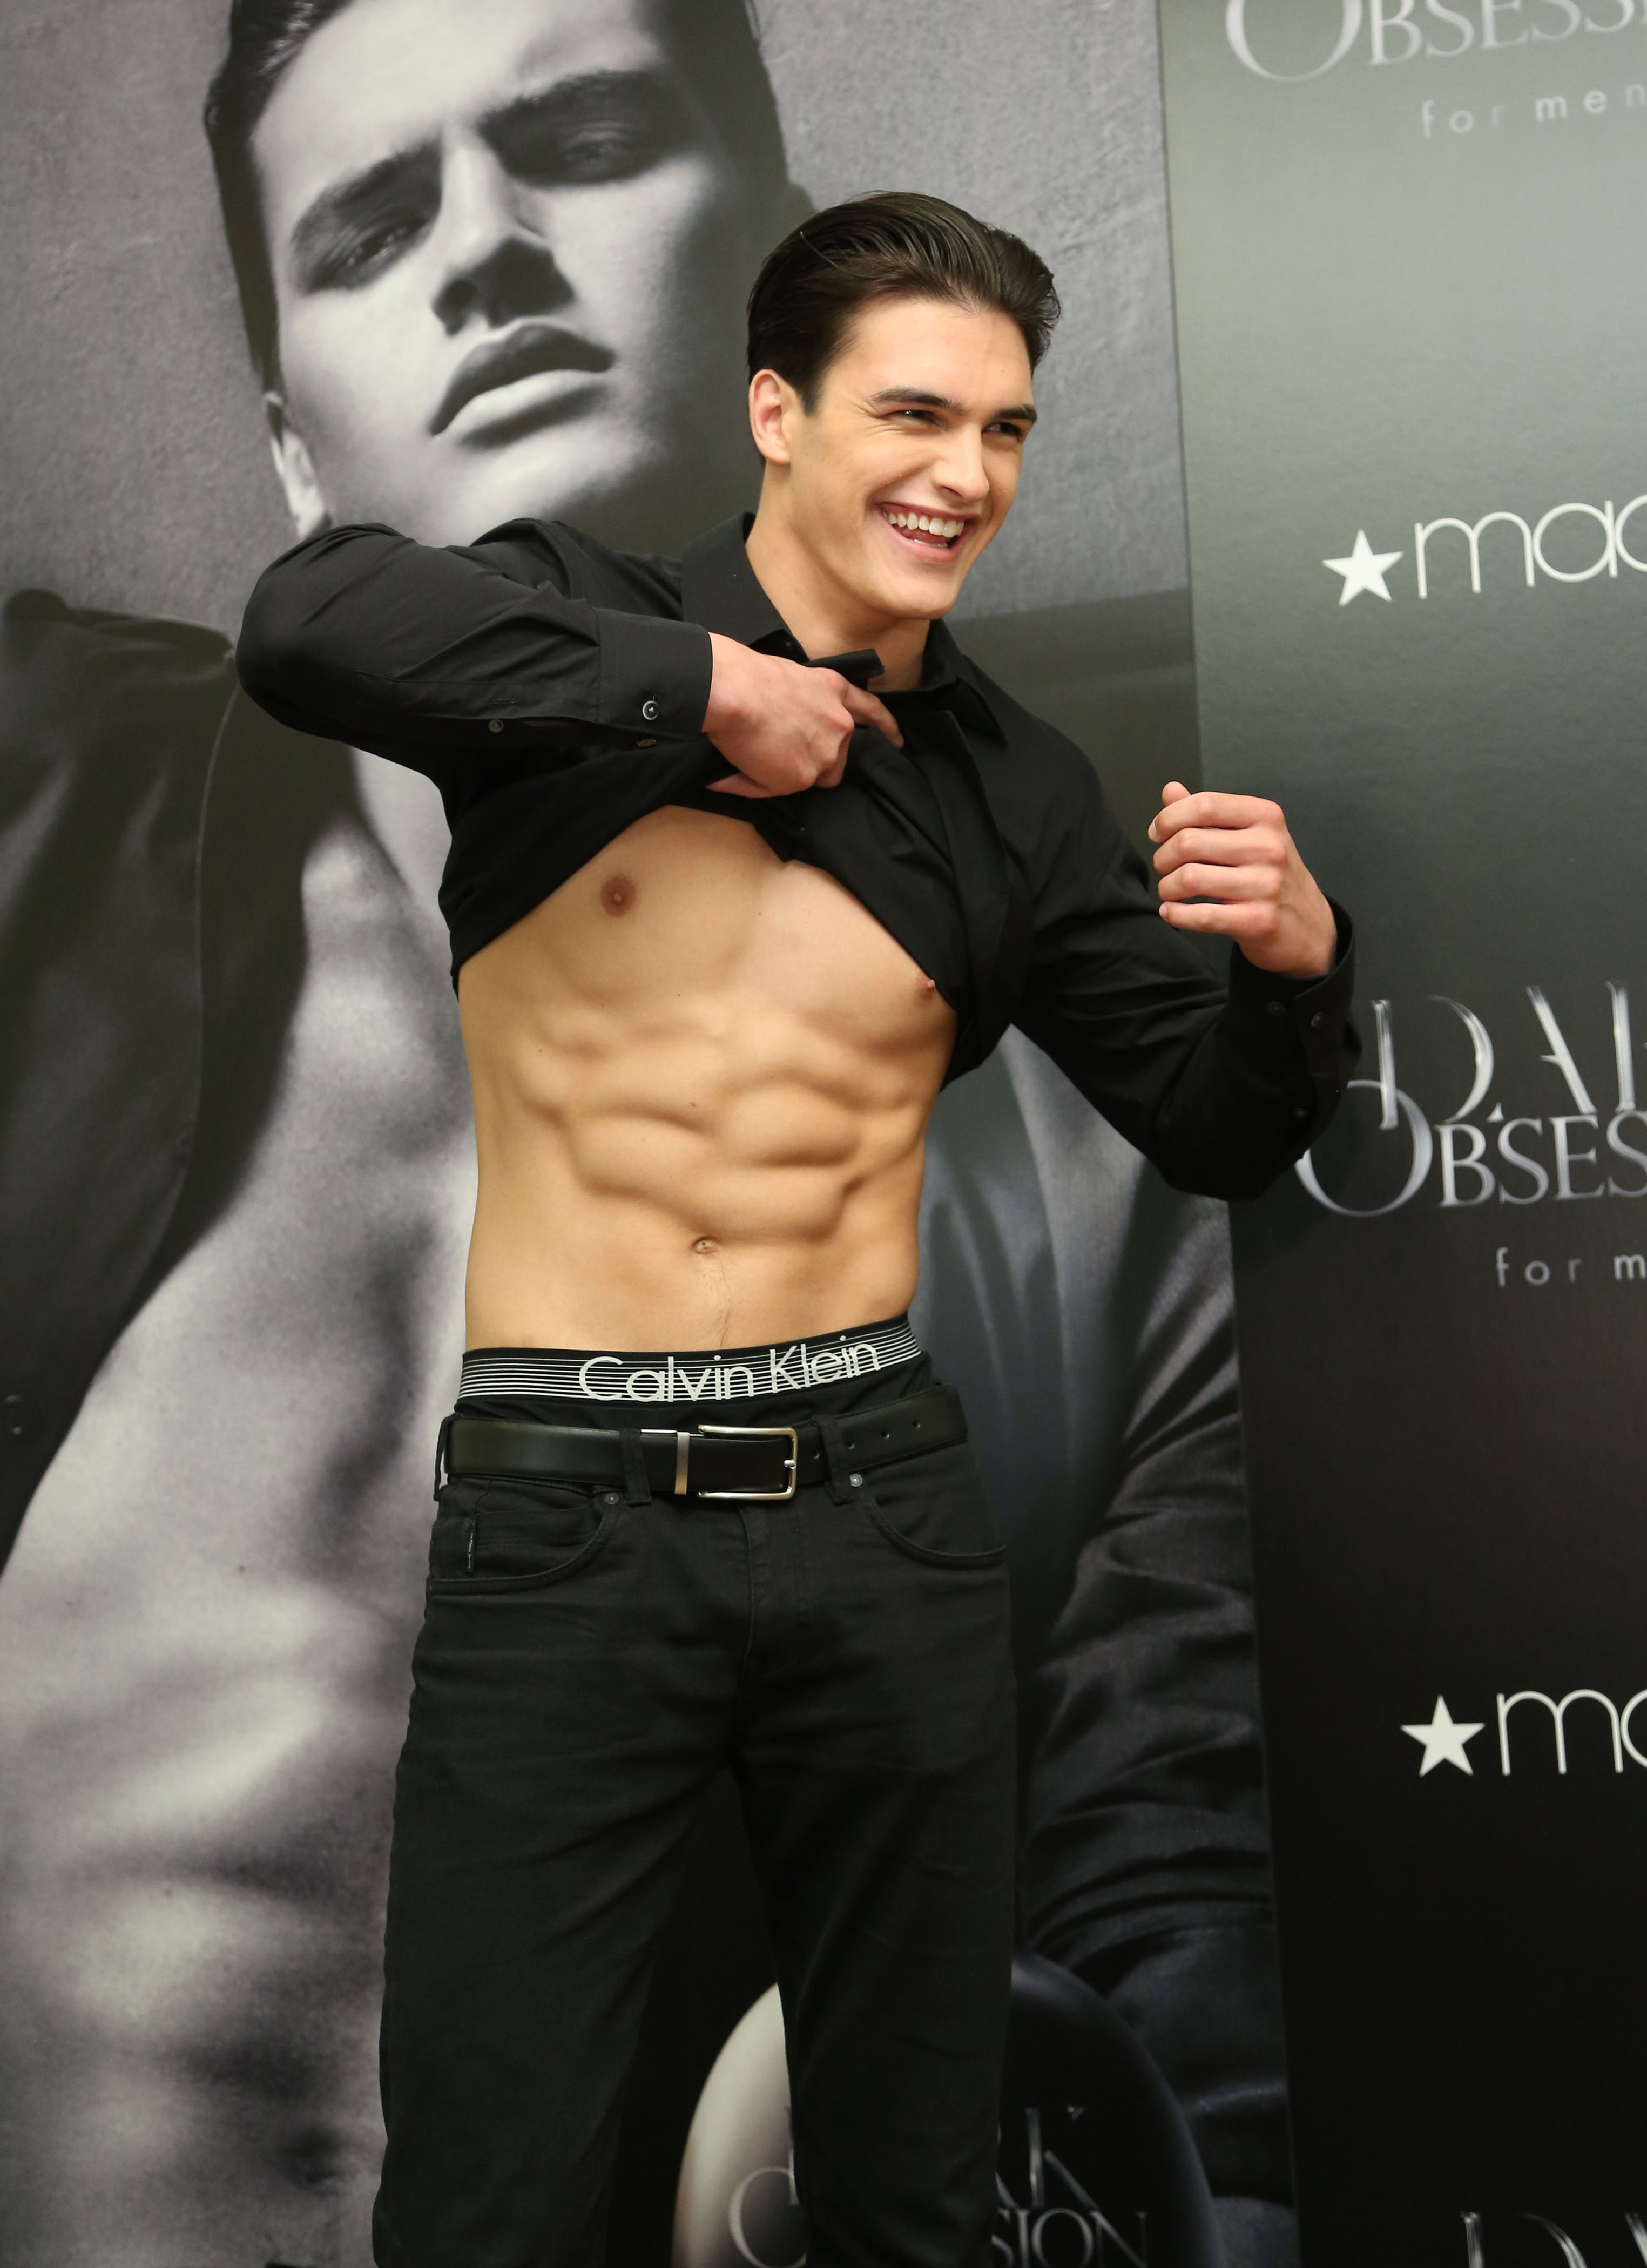 Model Matthew Terry, the face of Calvin Klein's new fragrance, DARK OBSESSION for men, reveals why he has so many screaming fans, at a meet-and-greet at Macy's Dadeland in Miami April 12.